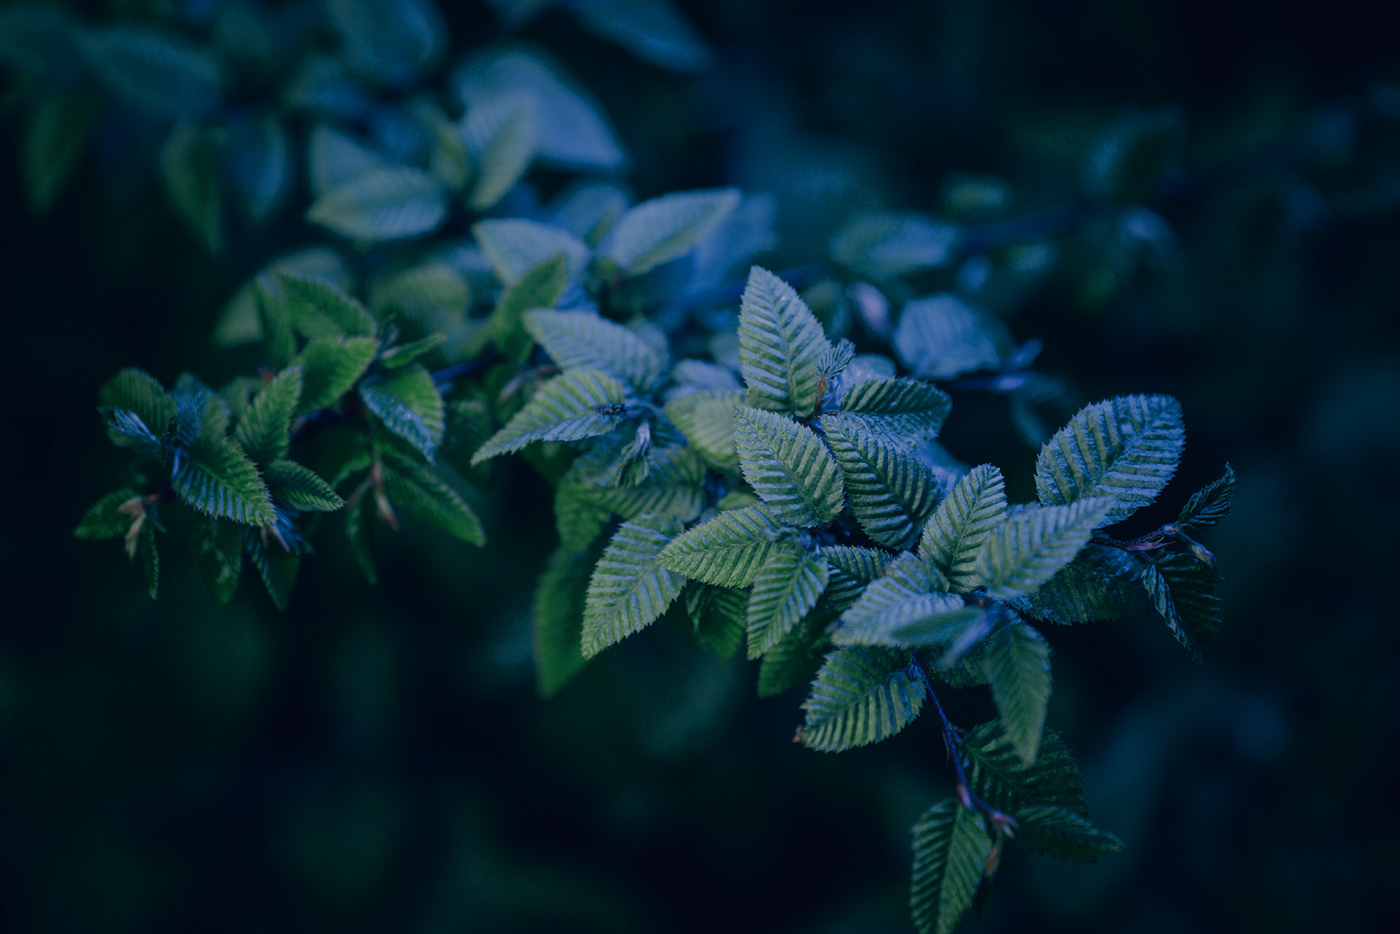 young green tree leaves in neon blue light